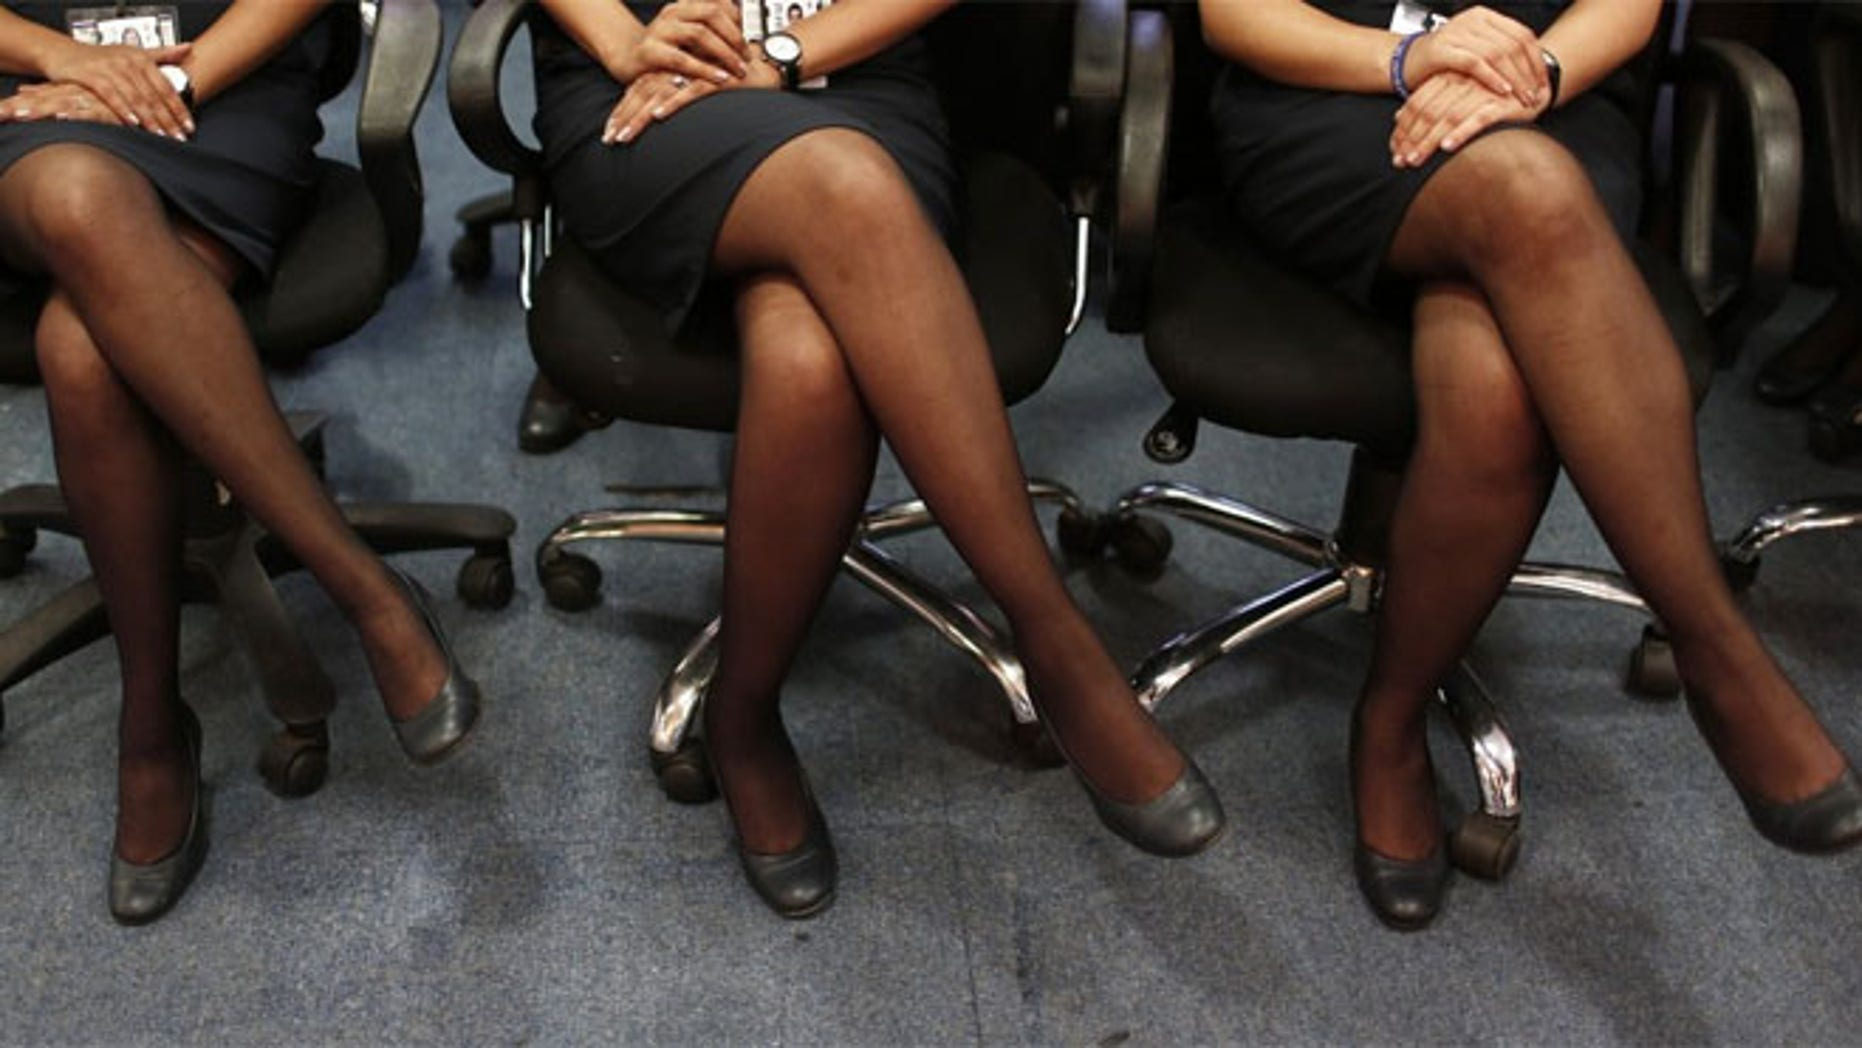 An email sent to employees last week revealed the new protocol that requires them to wear high heels until every passenger has boarded and is seated.